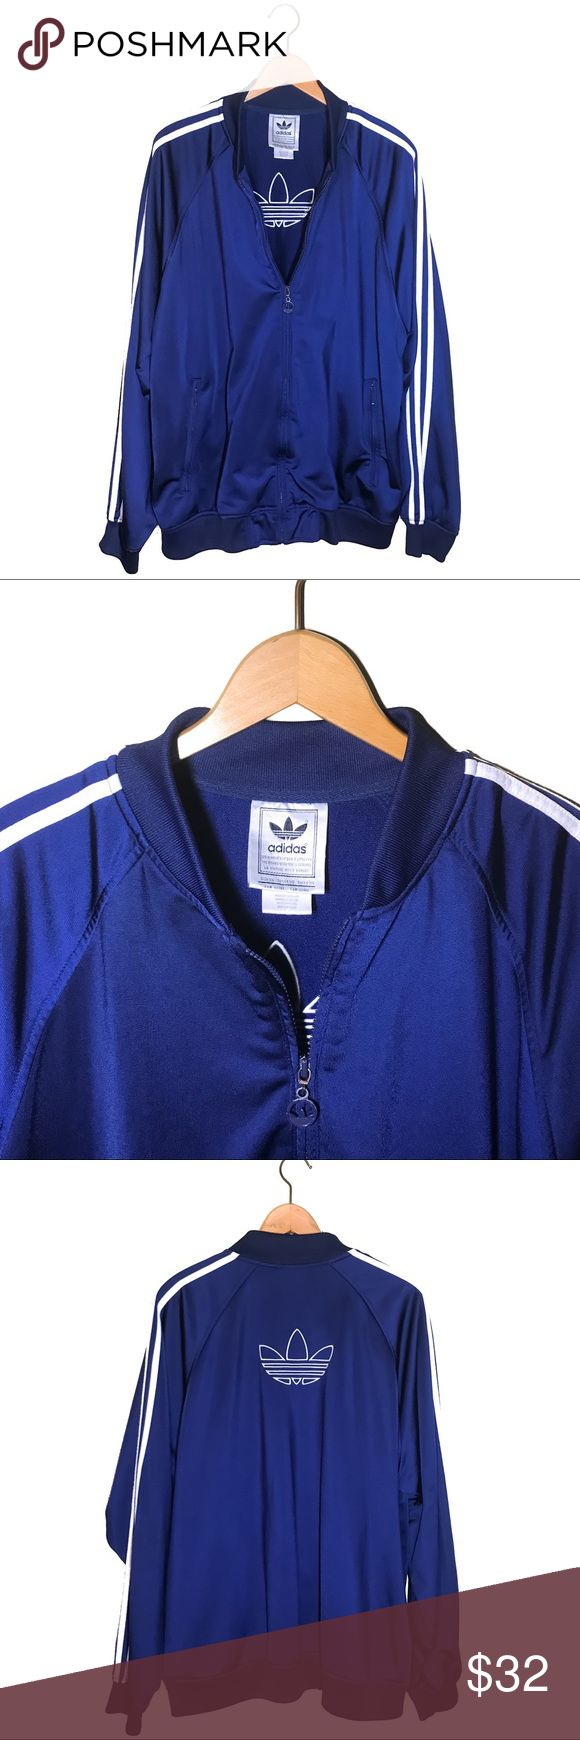 adidas Track Jacket Vintage Trefoil Size XL Vintage Retro Adidas Track Jacket NWOT. Full zip up Striped Trefoil blue and white Athletic running windbreaker jacket. Superb condition! Very nice 80's style jacket. Polyester, Size XL. You're next favorite jacket for all occasions! If you have any questions please comment!                                                                         Adidas . Originals . Nike . Retro . Lululemon . New Balance . Urban Outfitters . Forever 21 . H&M adidas…